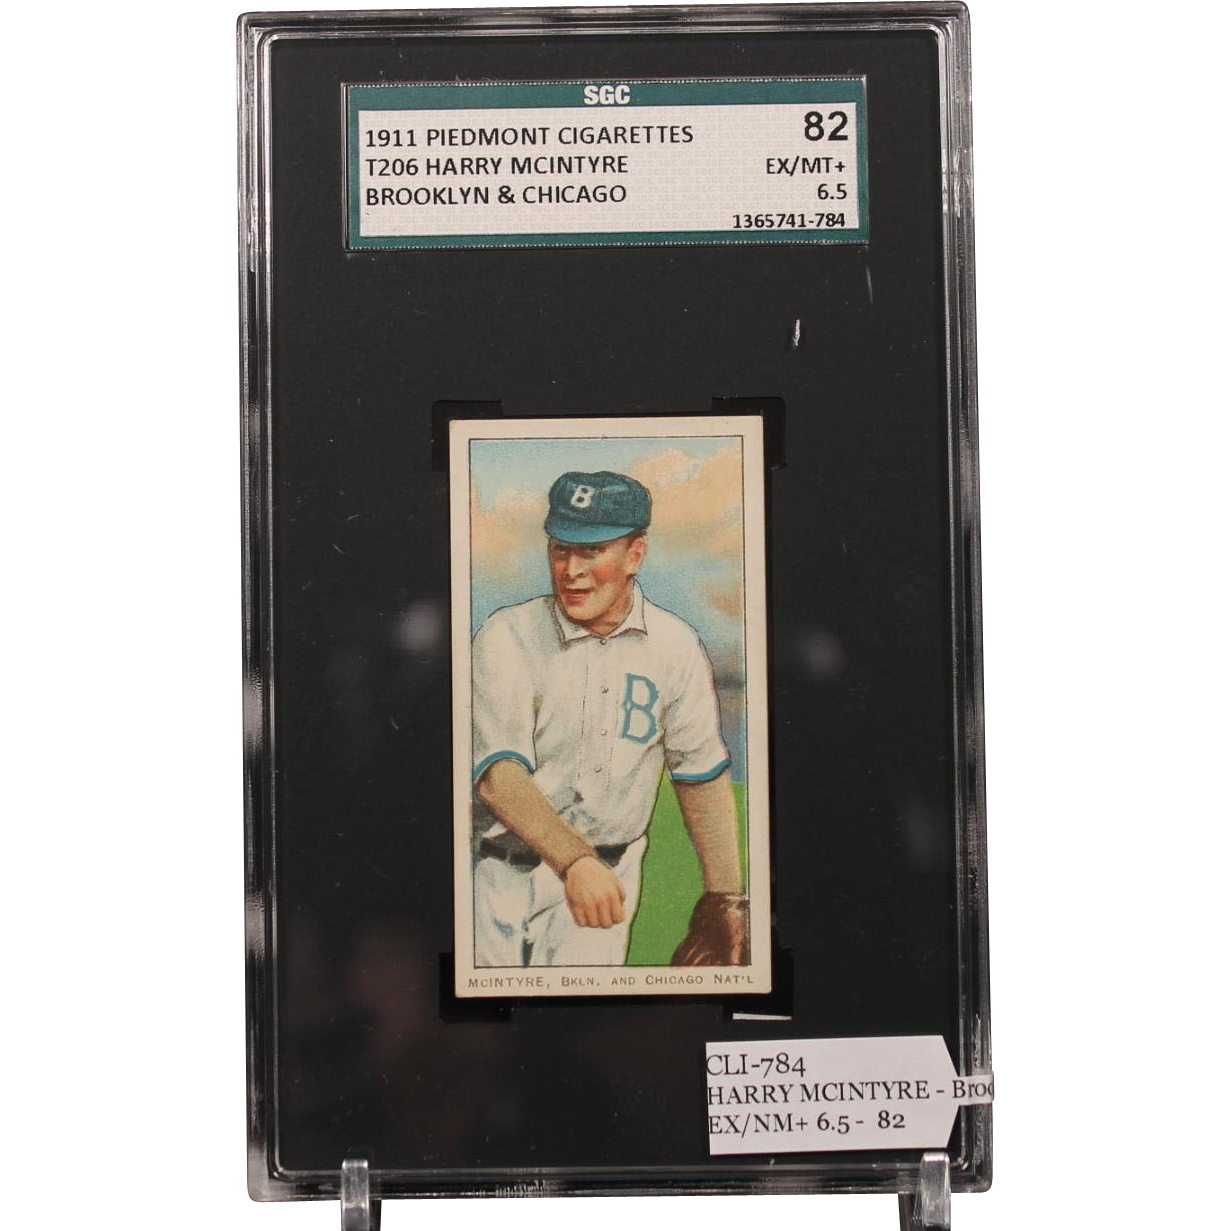 T206 HARRY MCINTYRE - Brooklyn & Chicago SGC grade 82 EX/NM+ 6.5